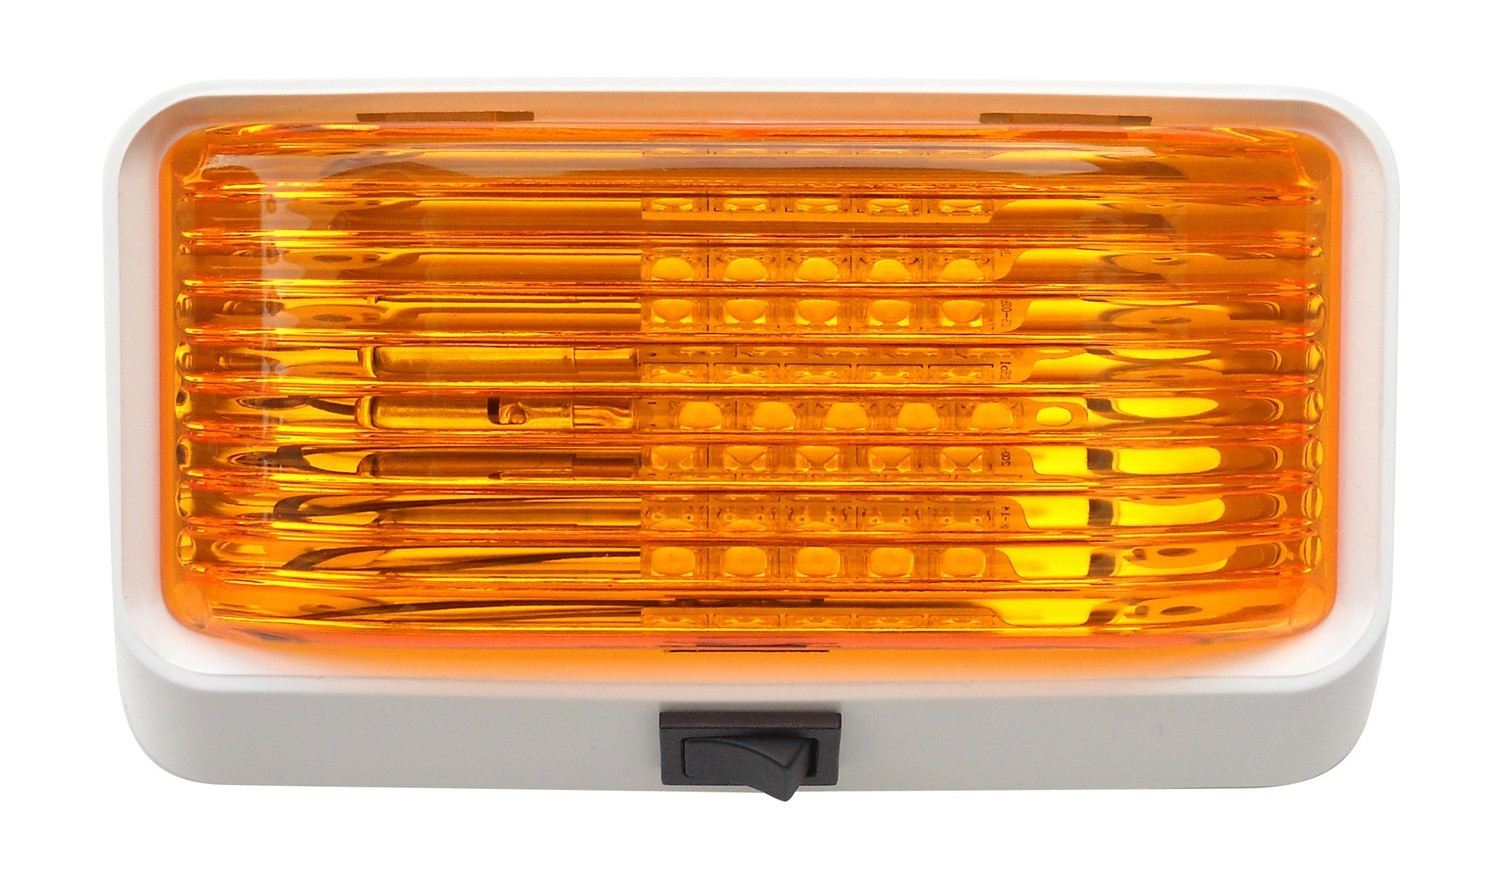 LED Porch Light with On/Off Switch - Amber